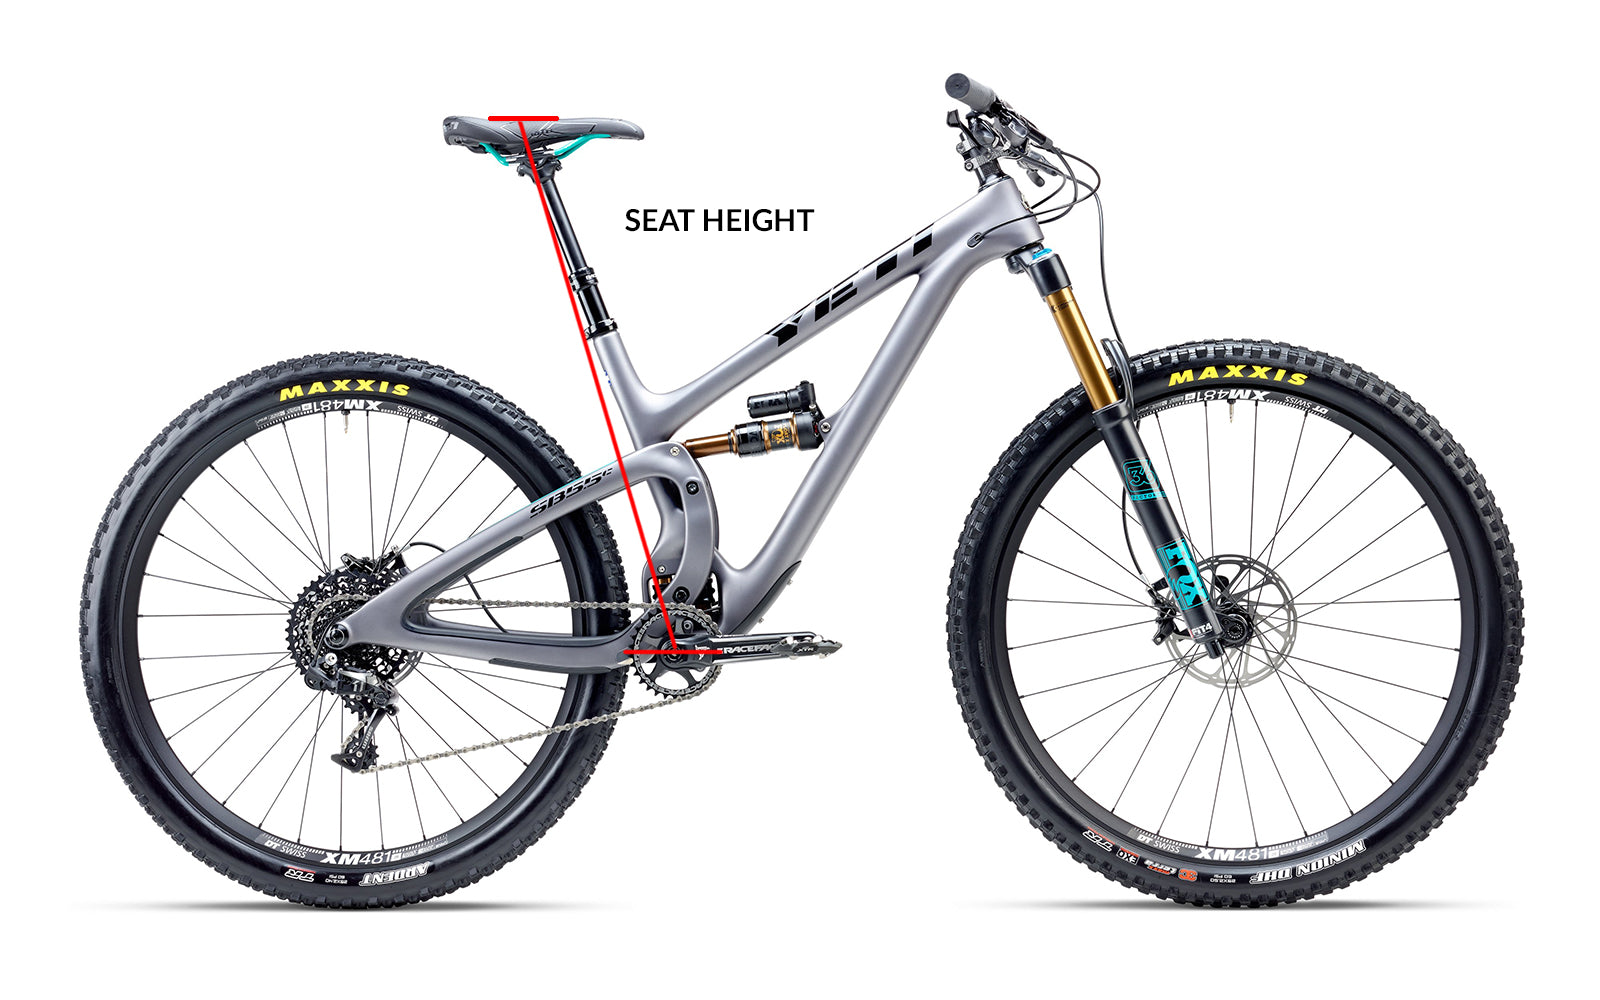 How To Choose The Correct Size Dropper Post - Seat Height